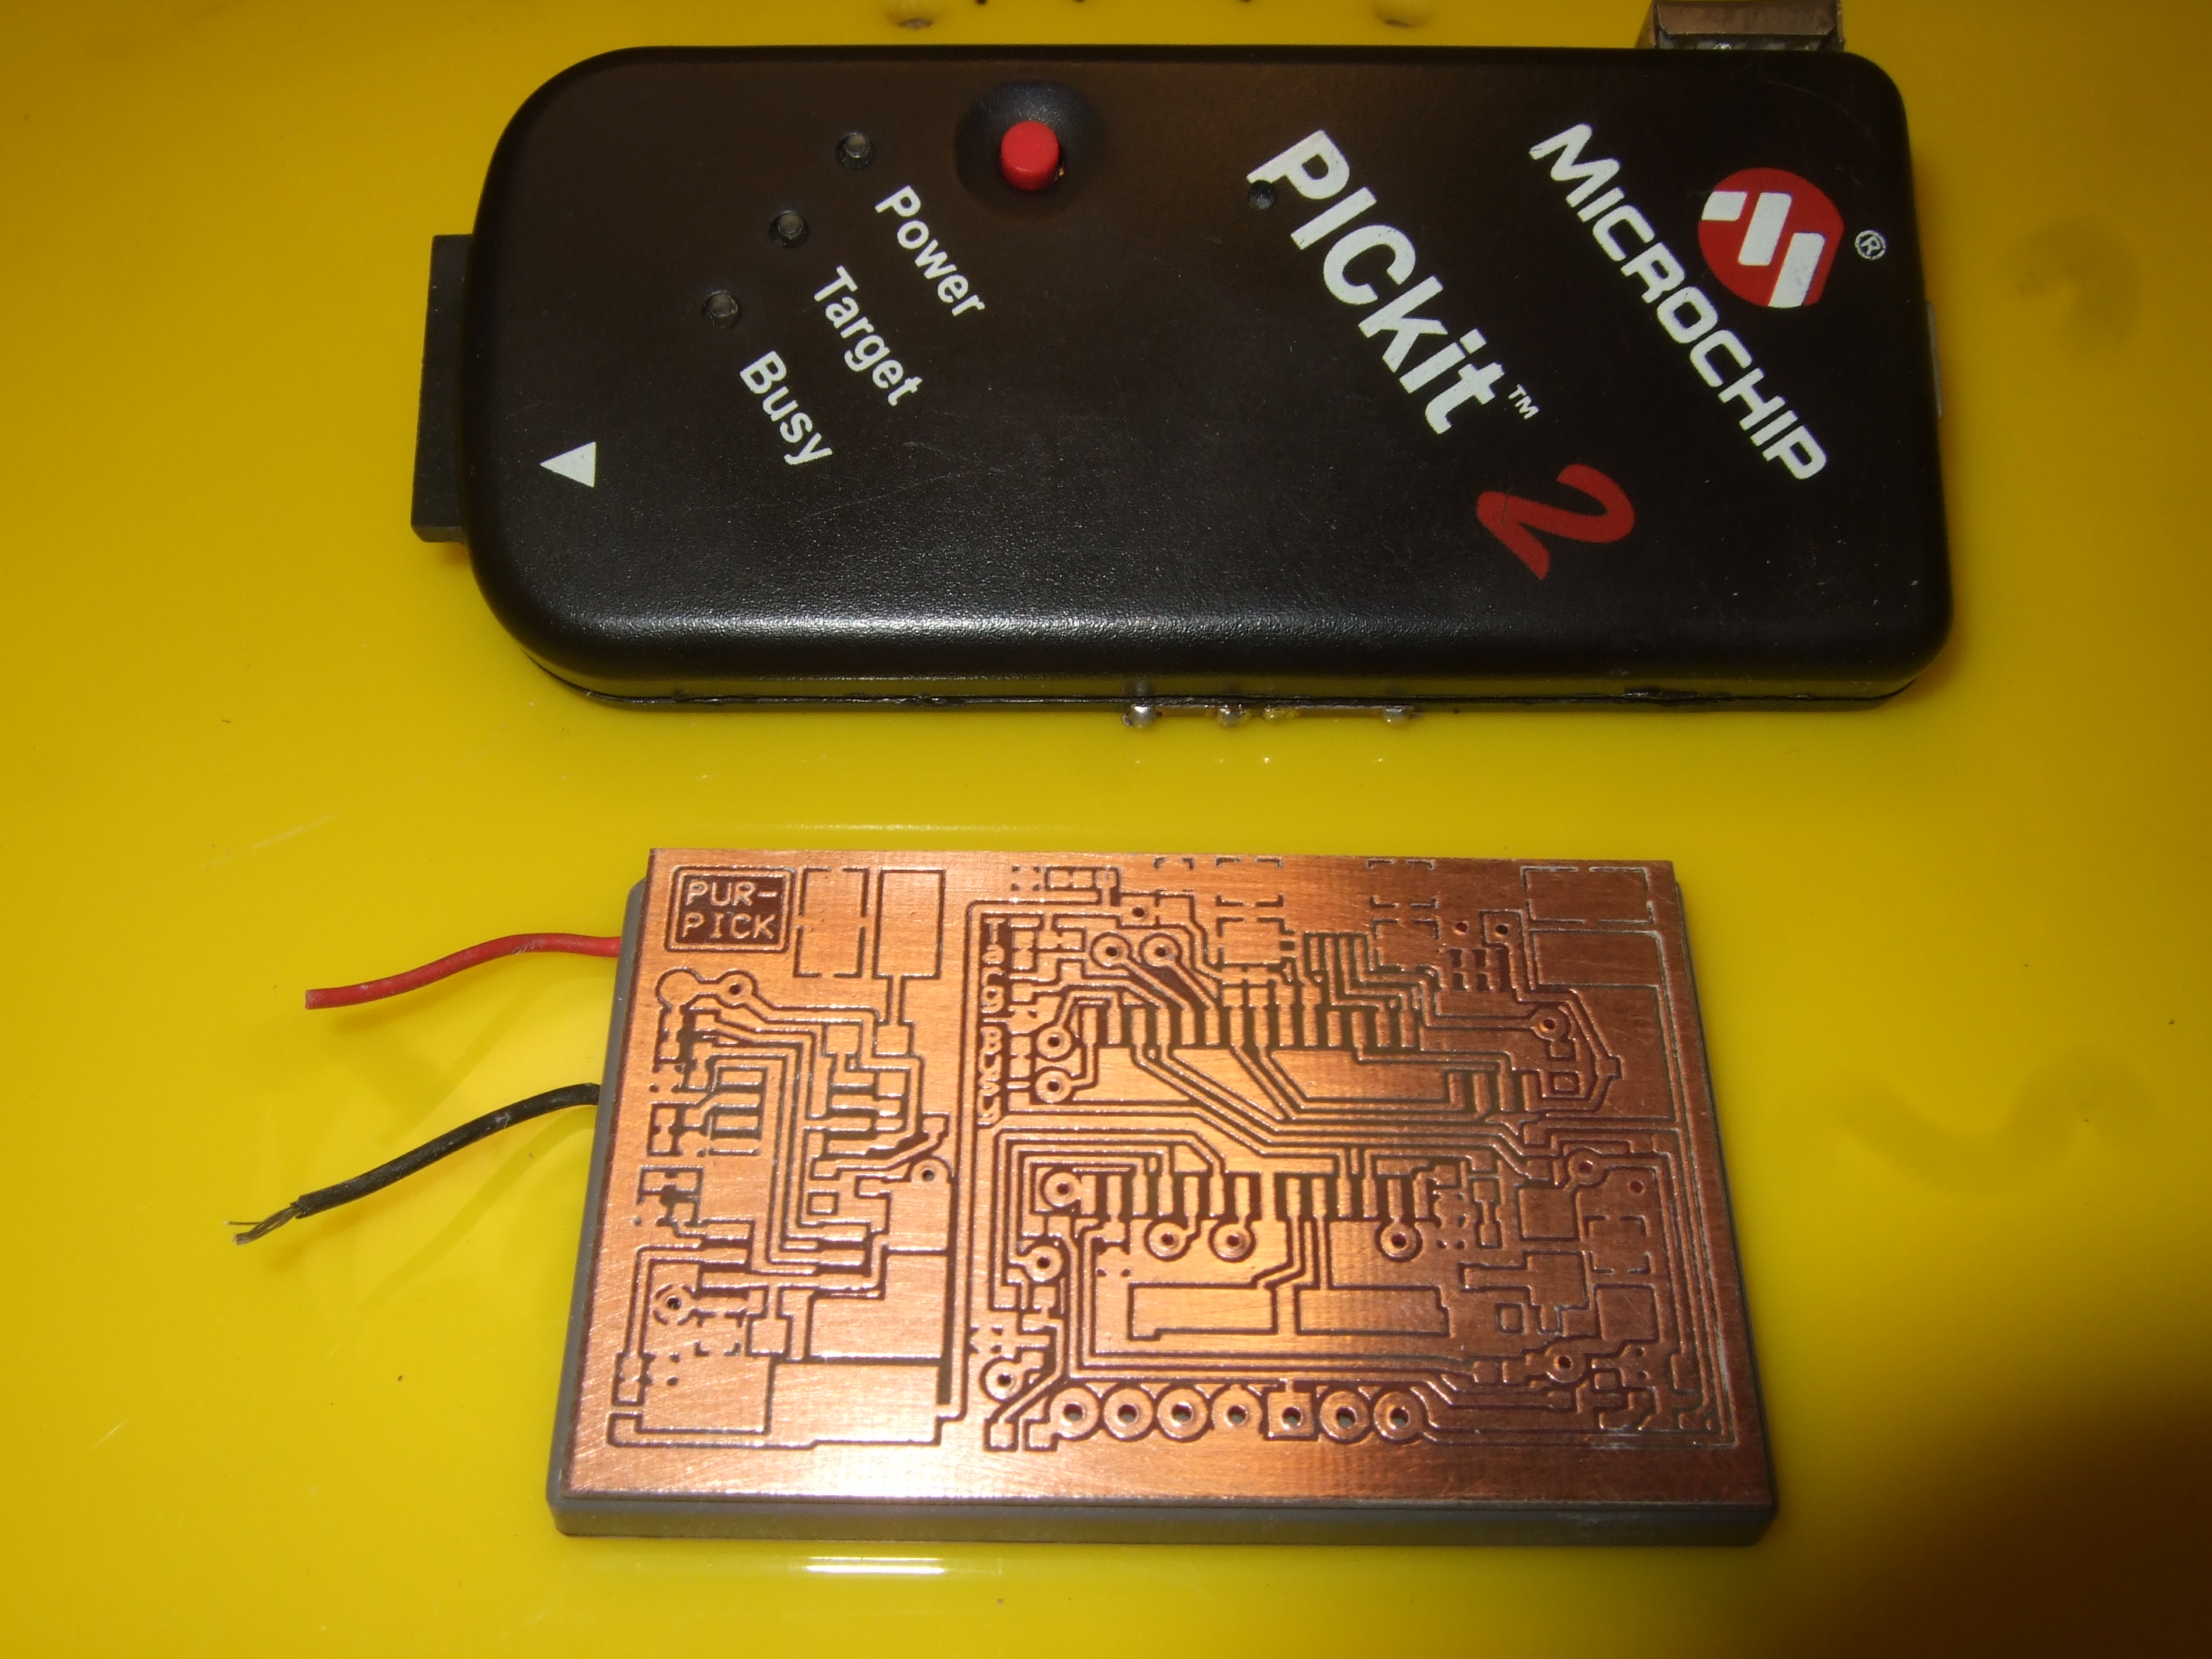 PURPIC, the wearable PICkit2 clone